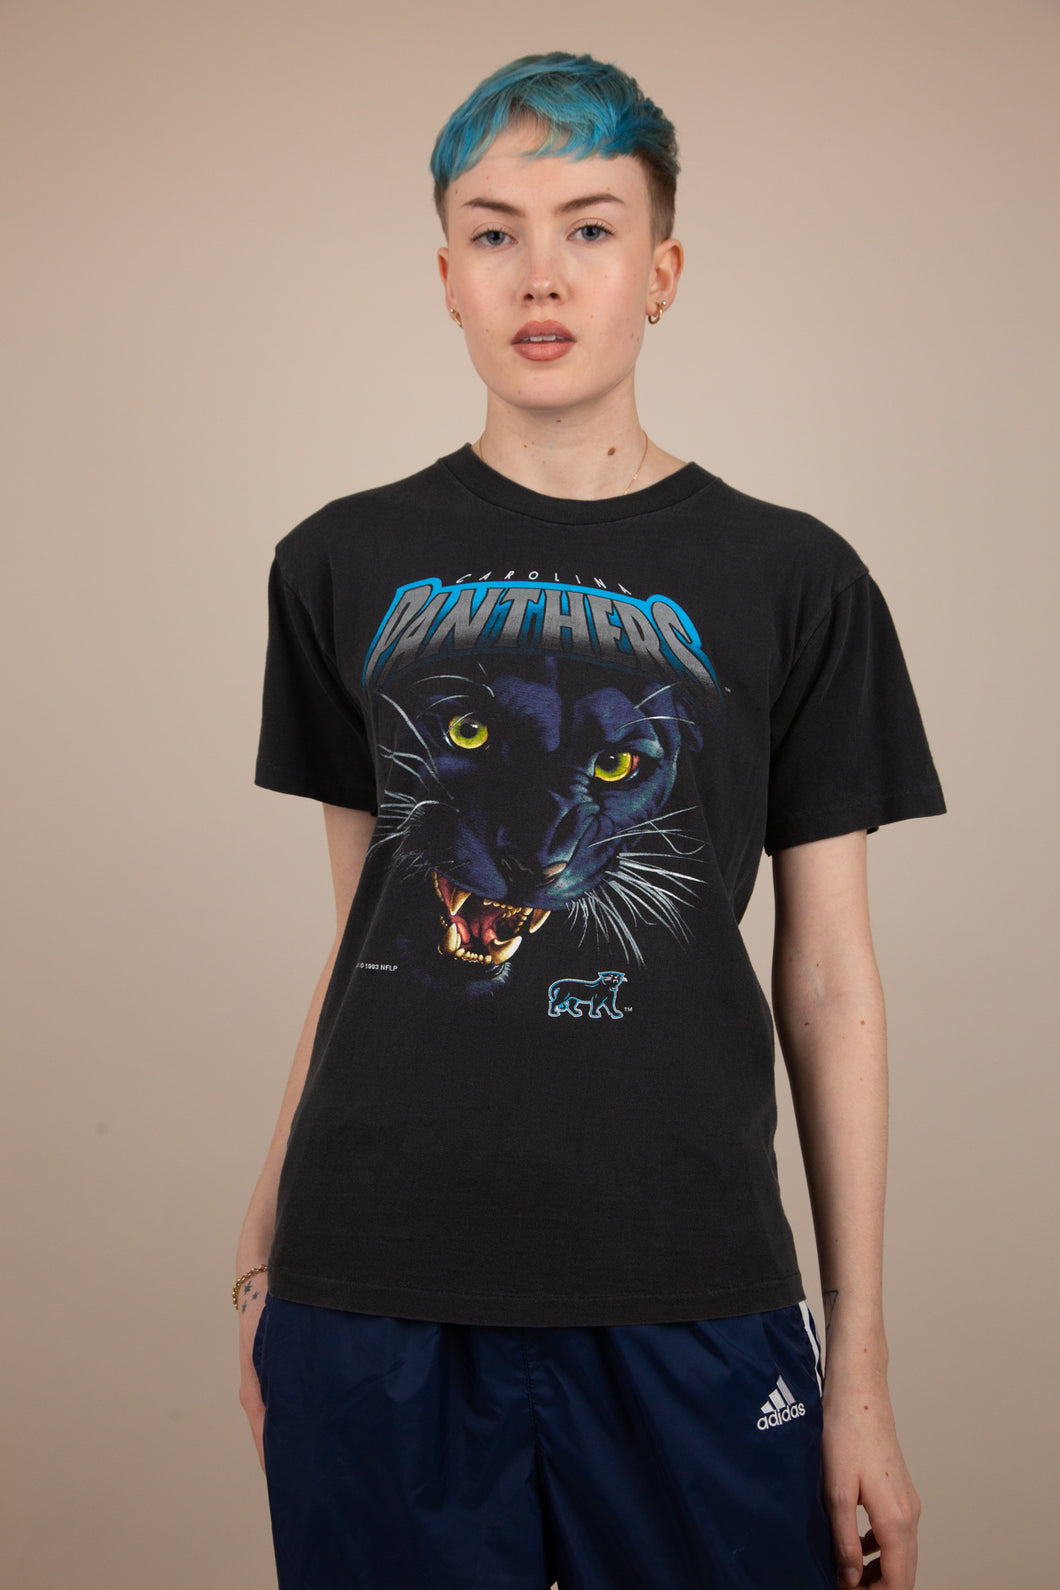 Model wearing Panthers tee, magichollow